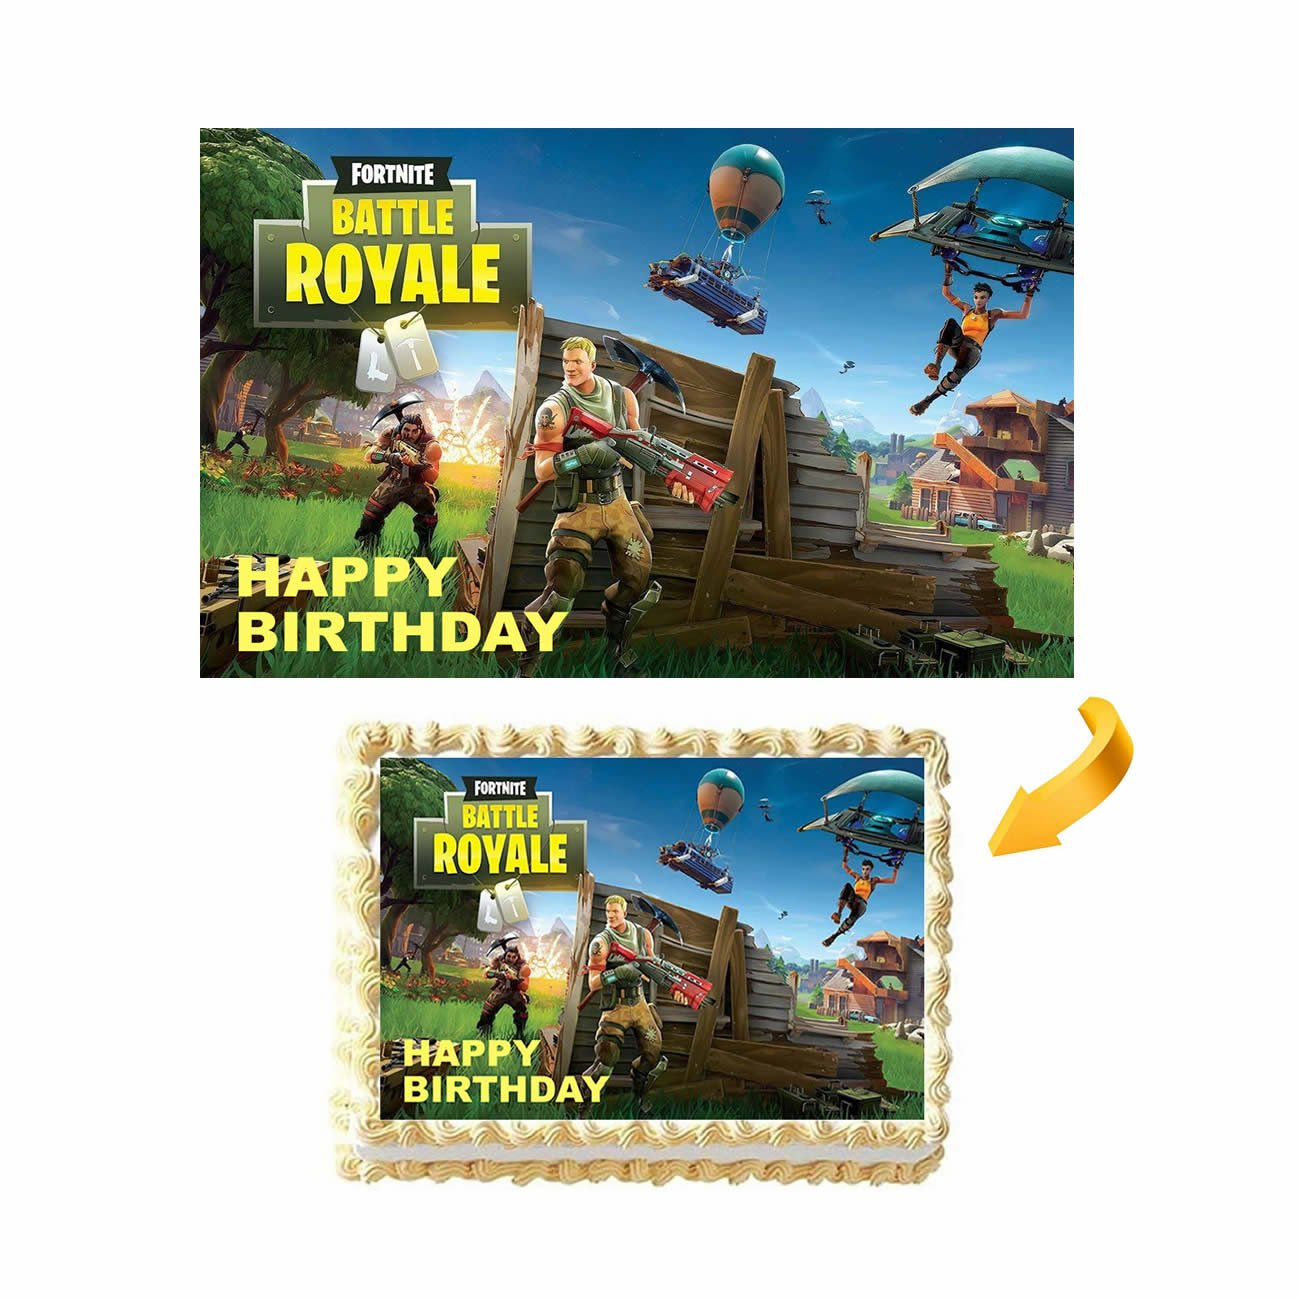 GEORLD Fortnite Battle Royale Birthday Cake Topper Edible Image,NO NAME Printed